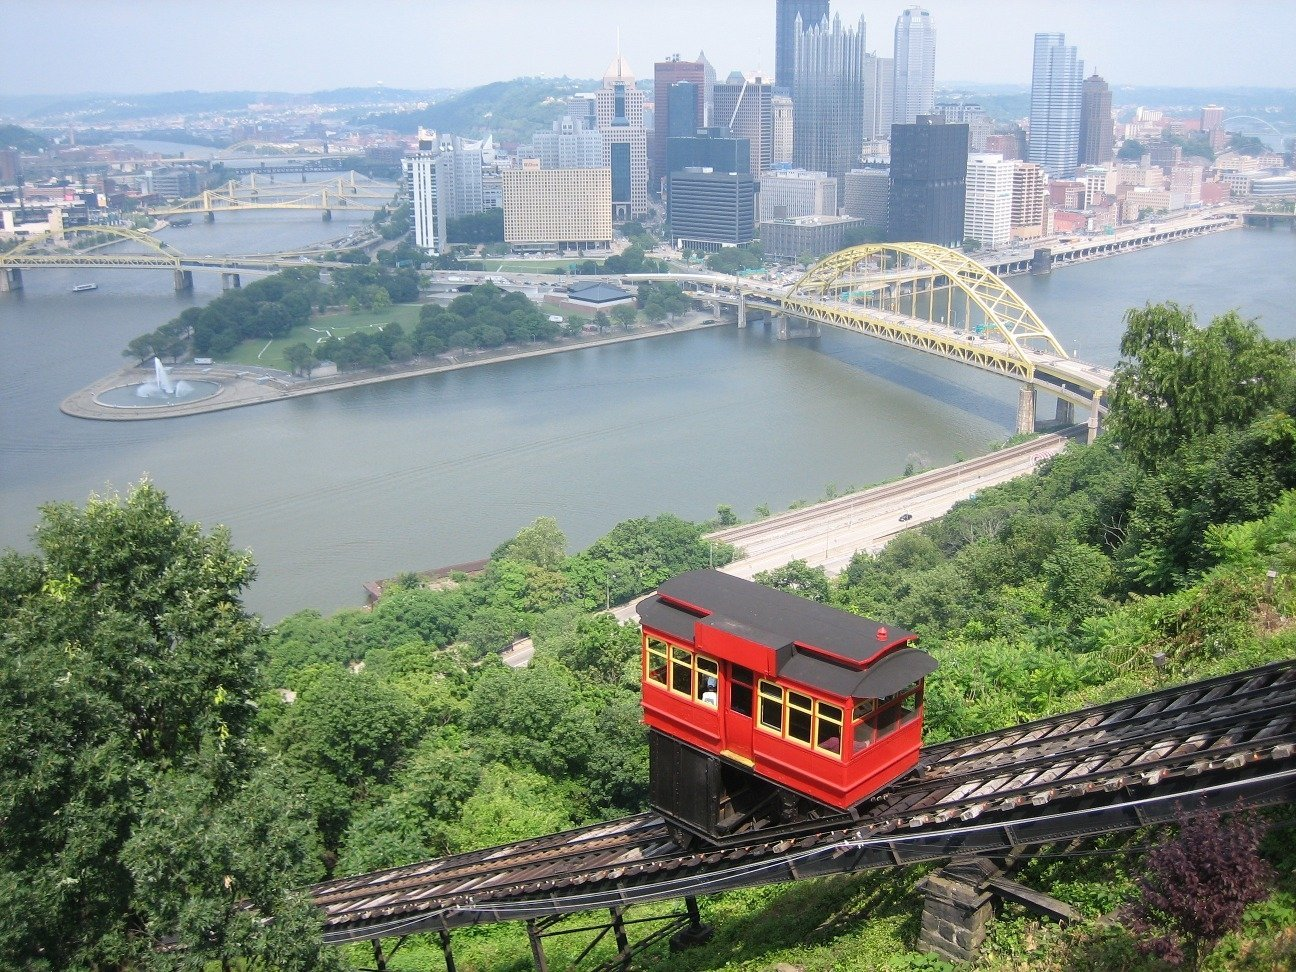 The Duquesne Incline in Pittsburgh, Pennsylvania (US) connects parking on either end of the line and reduces traffic on Mt. Washington. Photo courtesy of By Plastikspork (Own work) [CC BY-SA 3.0 (https://creativecommons.org/licenses/by-sa/3.0) or GFDL (https://www.gnu.org/copyleft/fdl.html)], via Wikimedia Commons.)